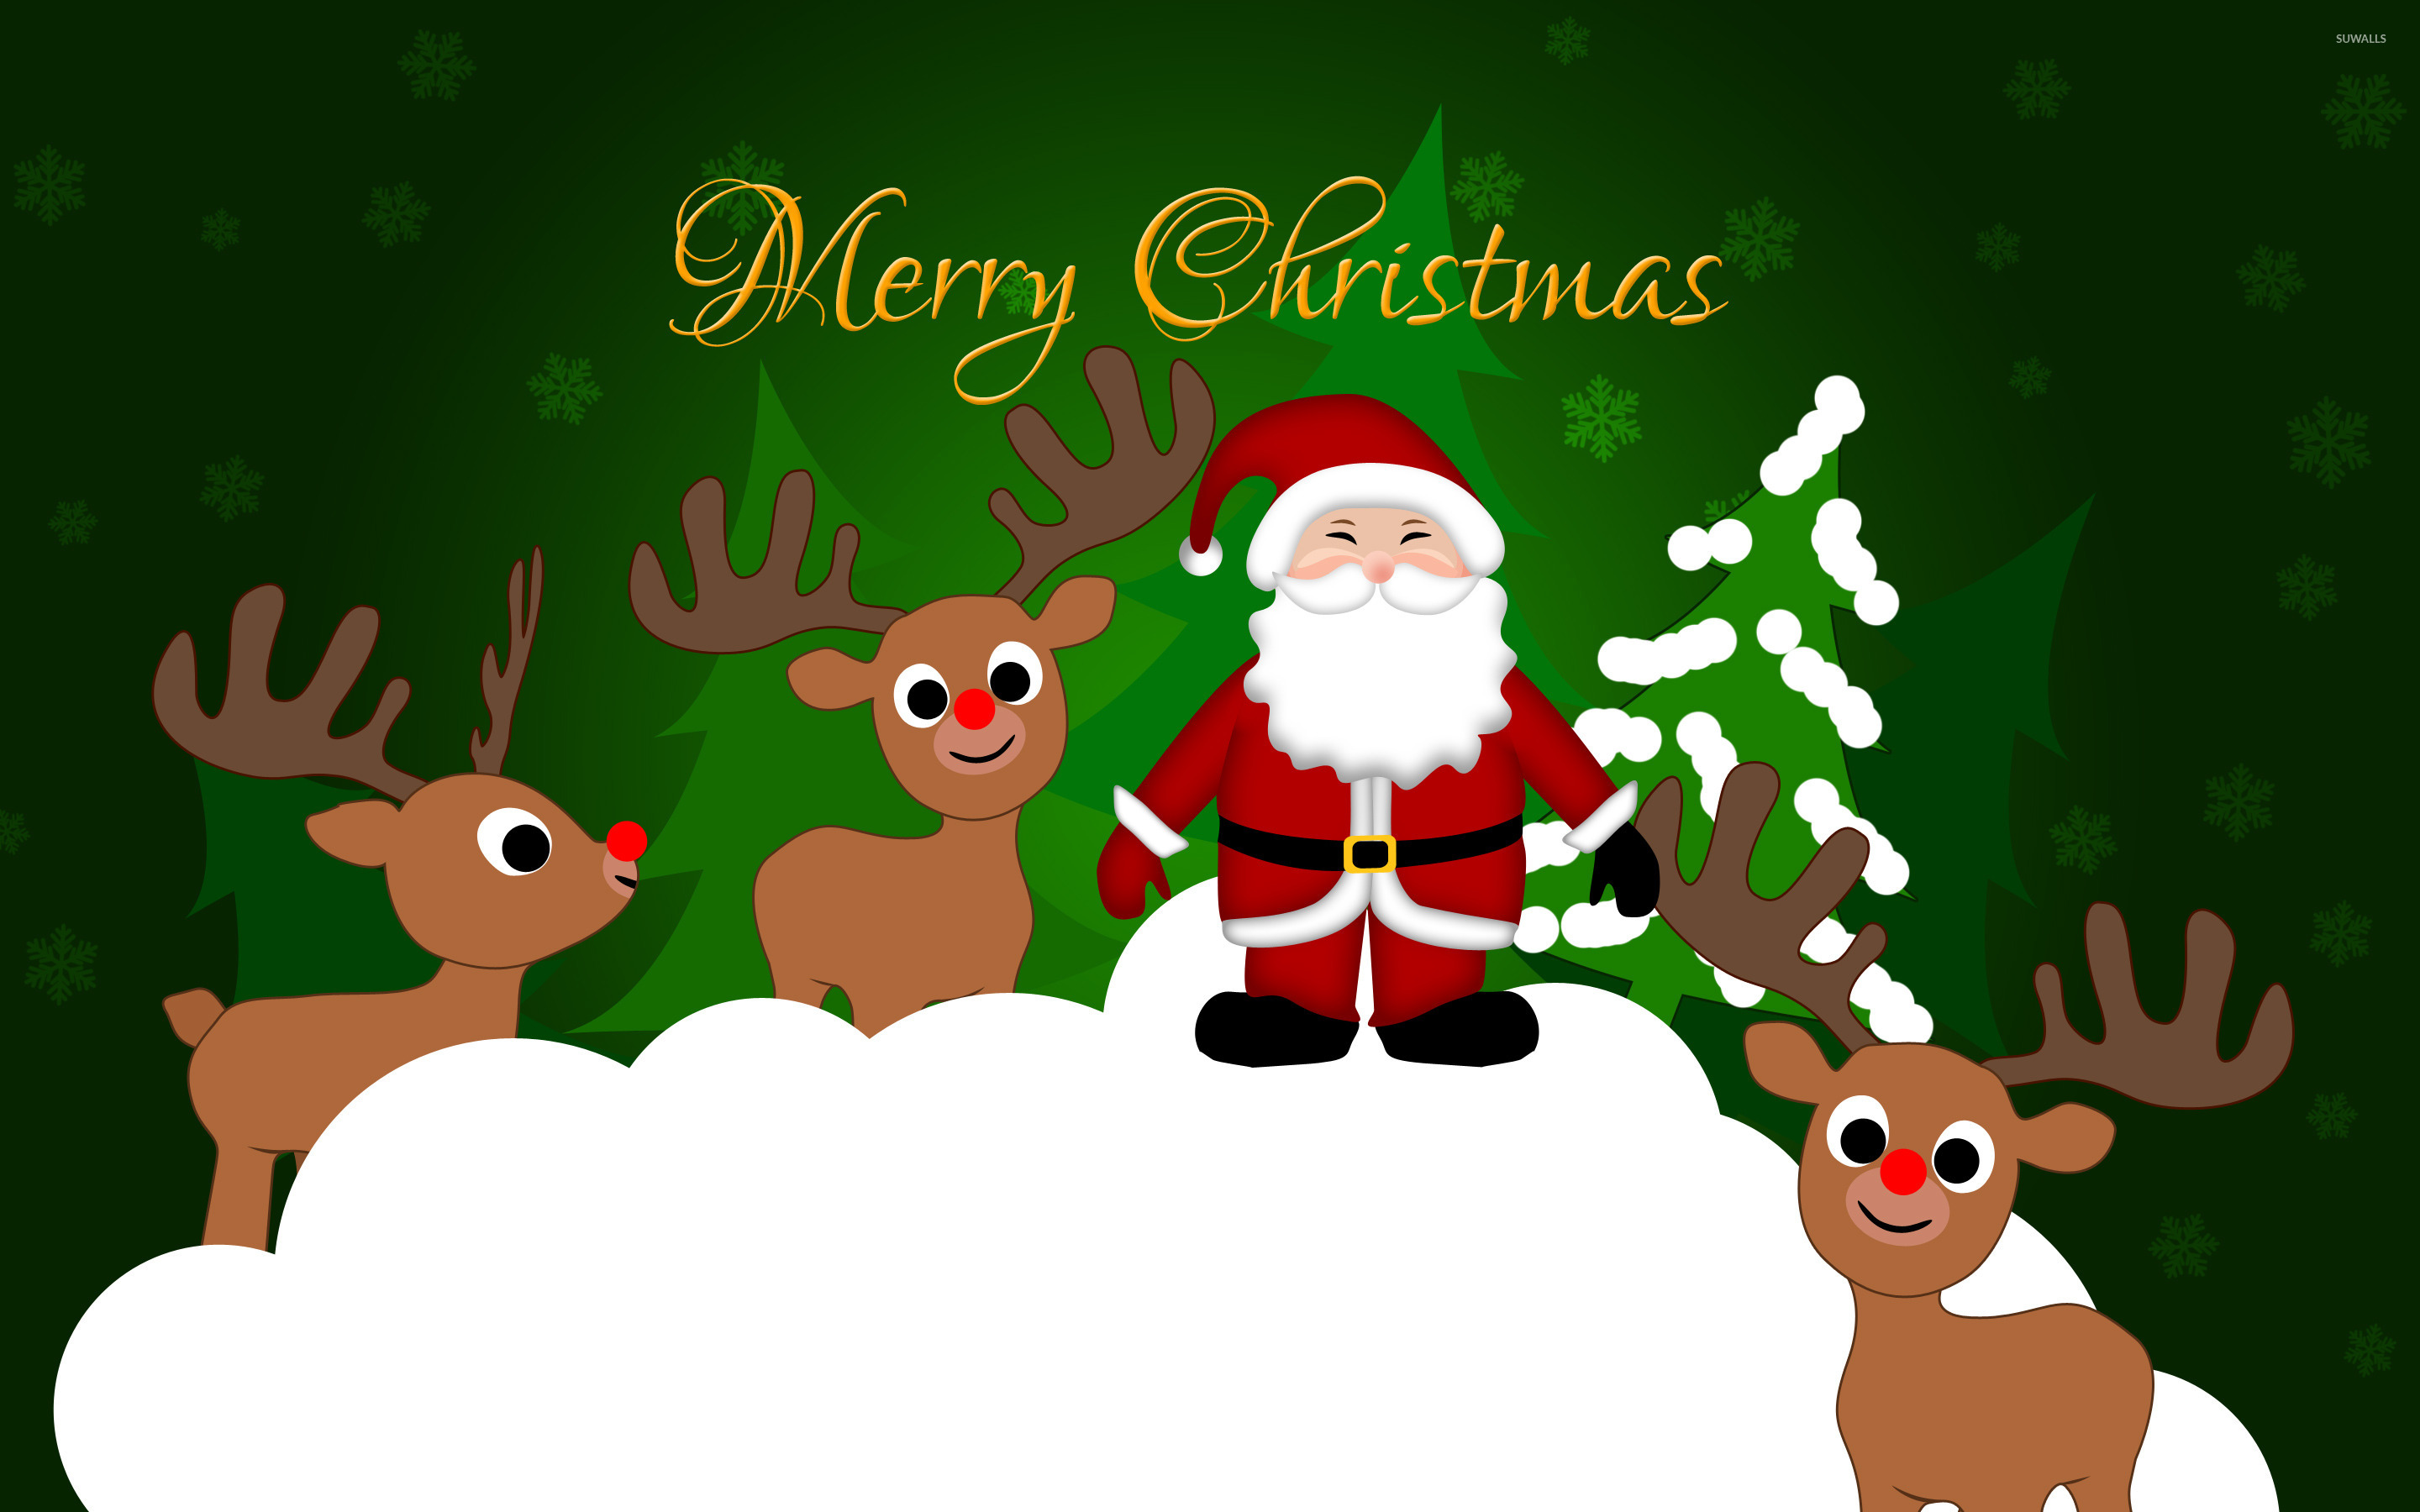 merry christmas [17] wallpaper - holiday wallpapers - #25812